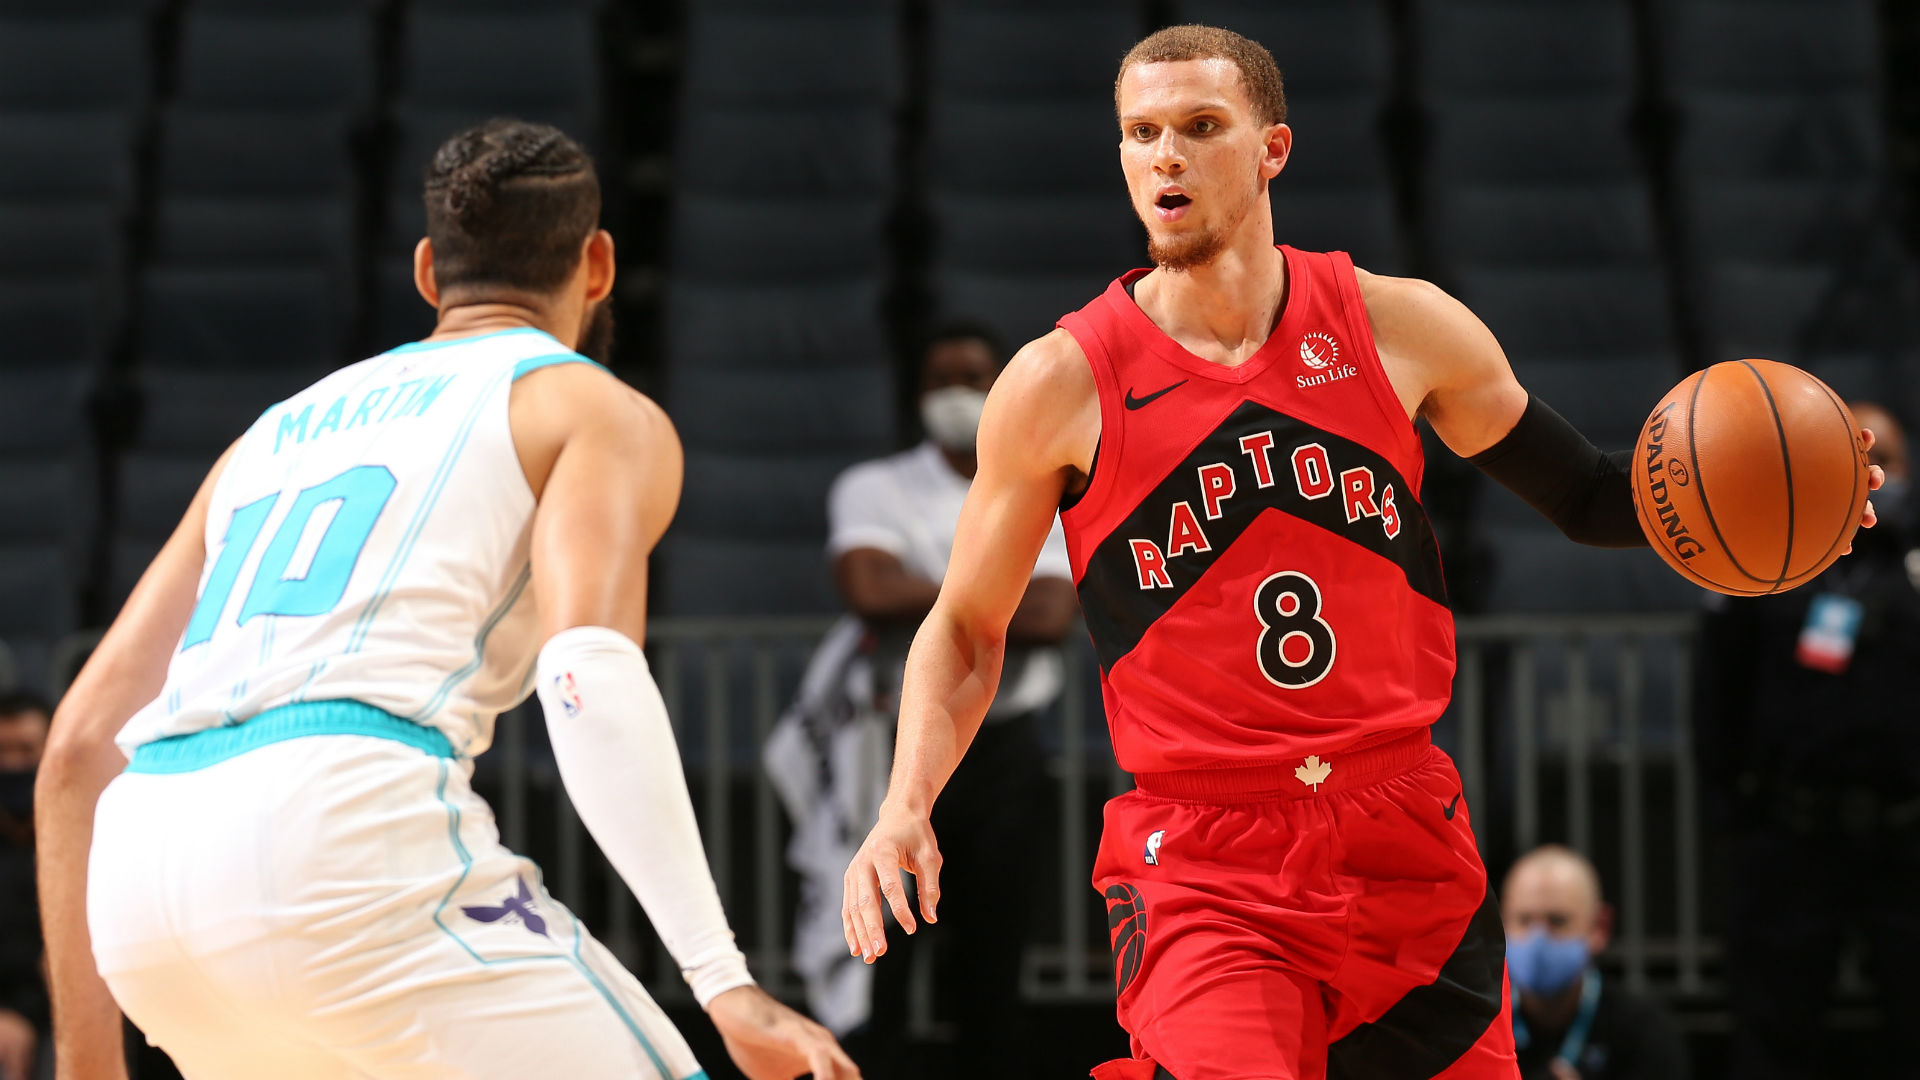 Three plays that show Toronto Raptors rookie Malachi Flynn's incredible  potential | NBA.com Canada | The official site of the NBA